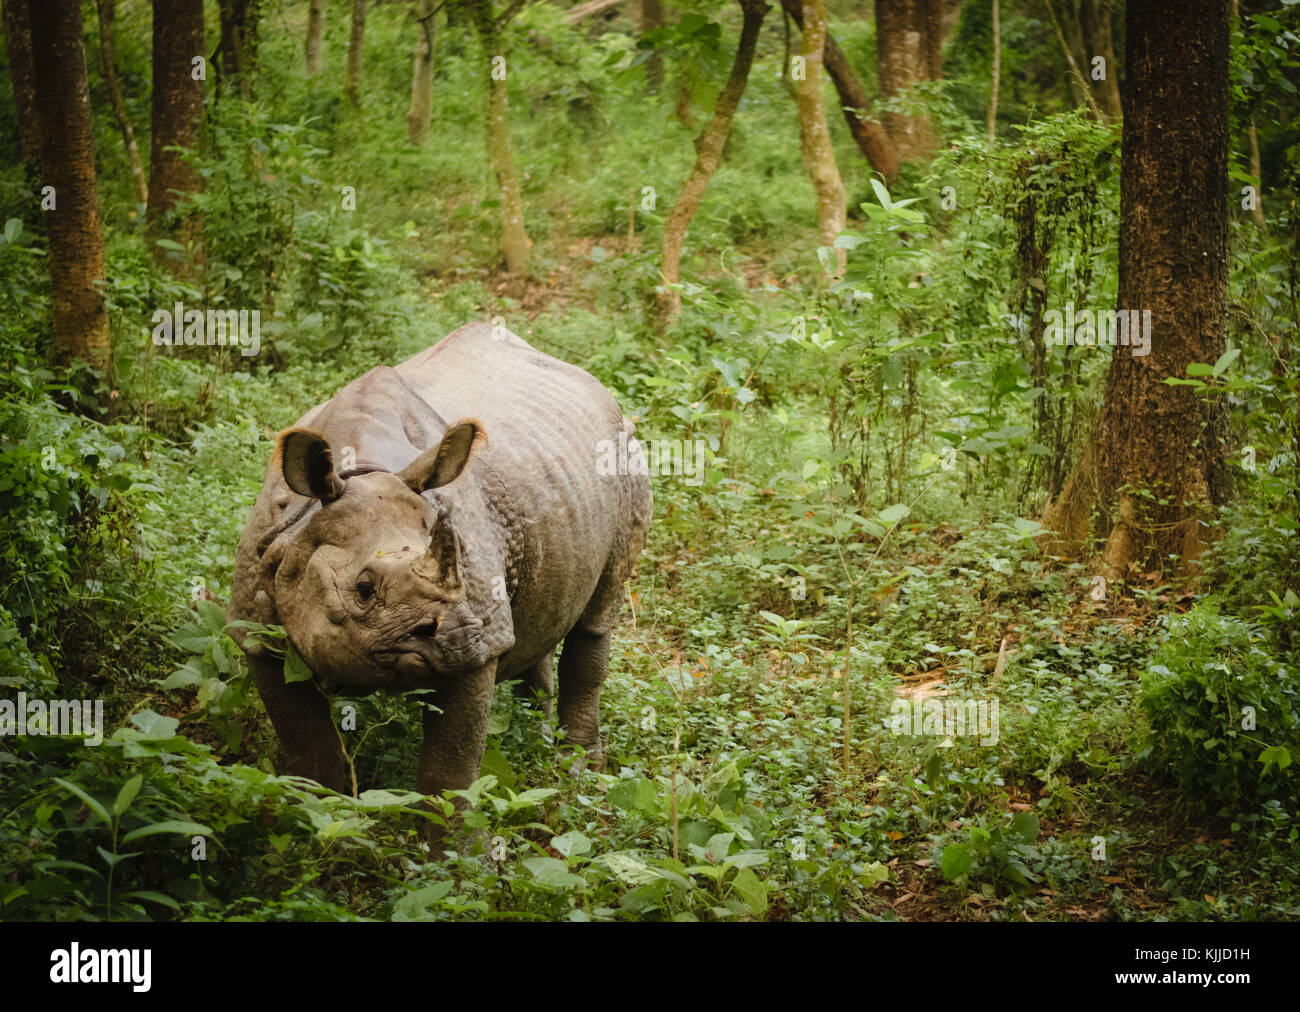 Isolated Indian one horned rhinoceros in Chitwan National Park, Nepal. - Stock Image